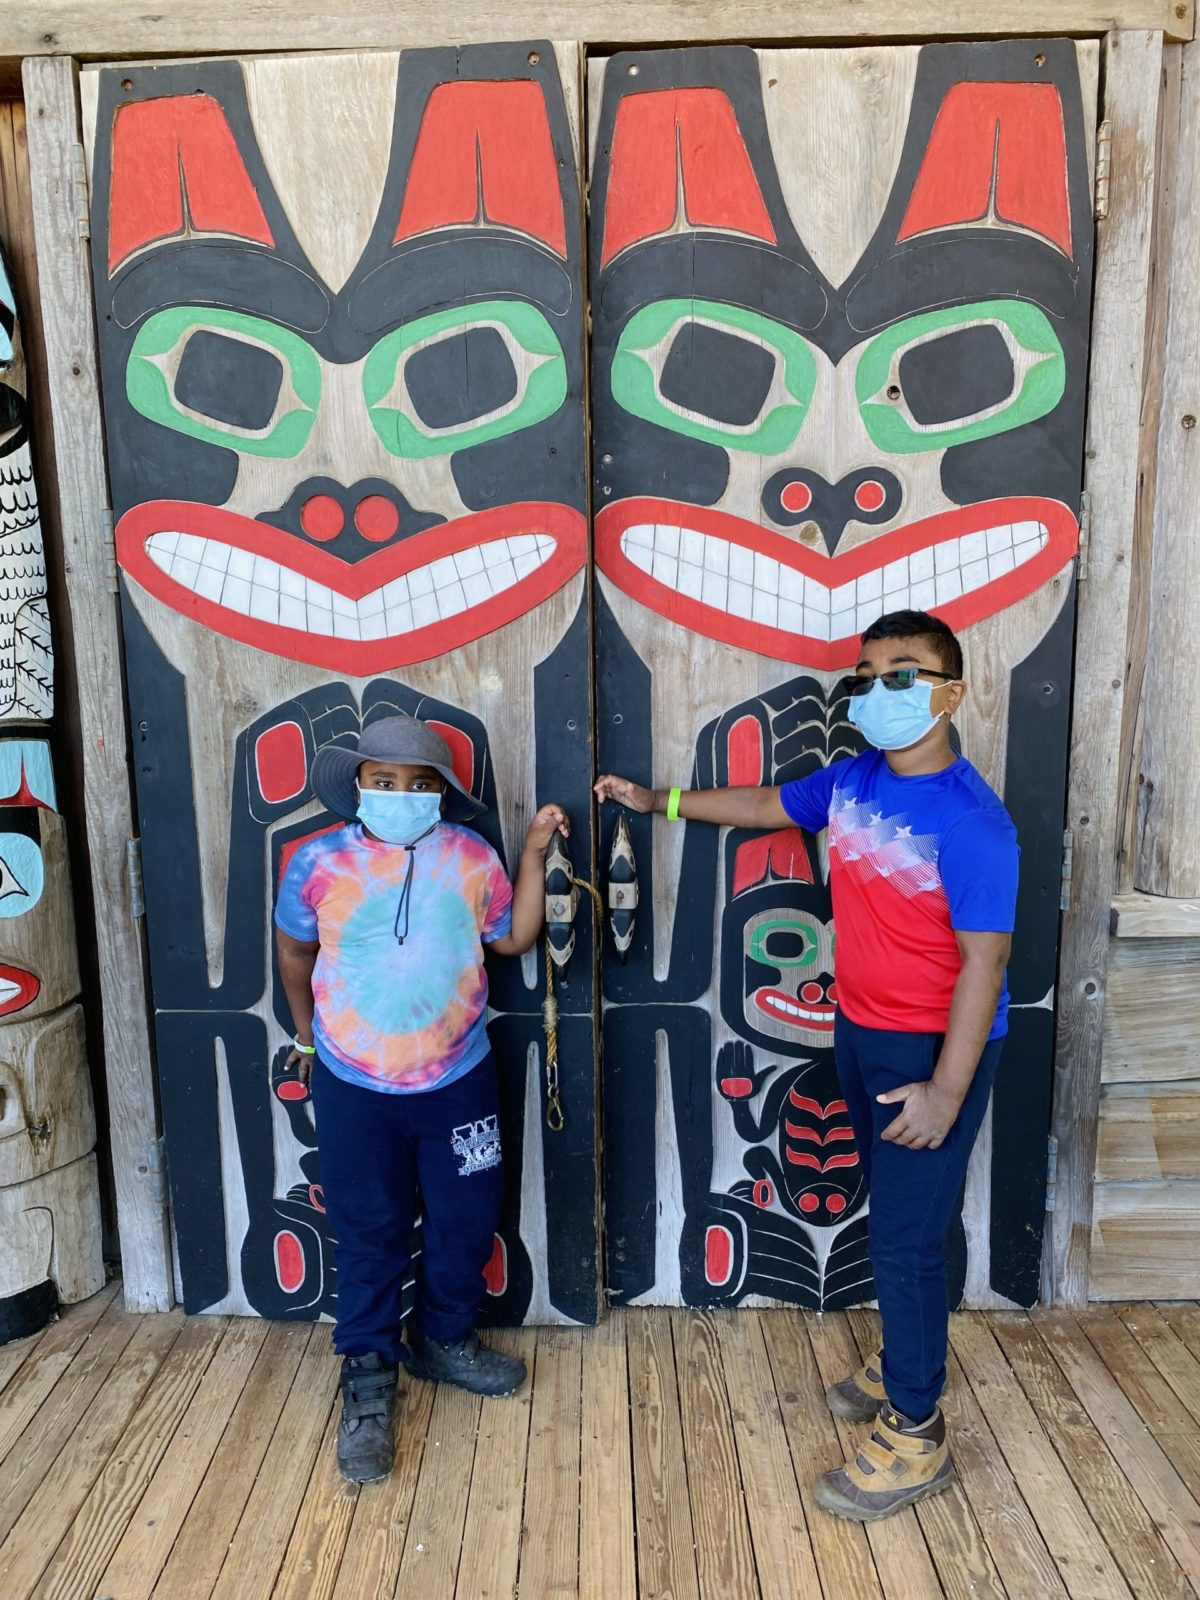 Children in front of large doors adorned with Native American Art